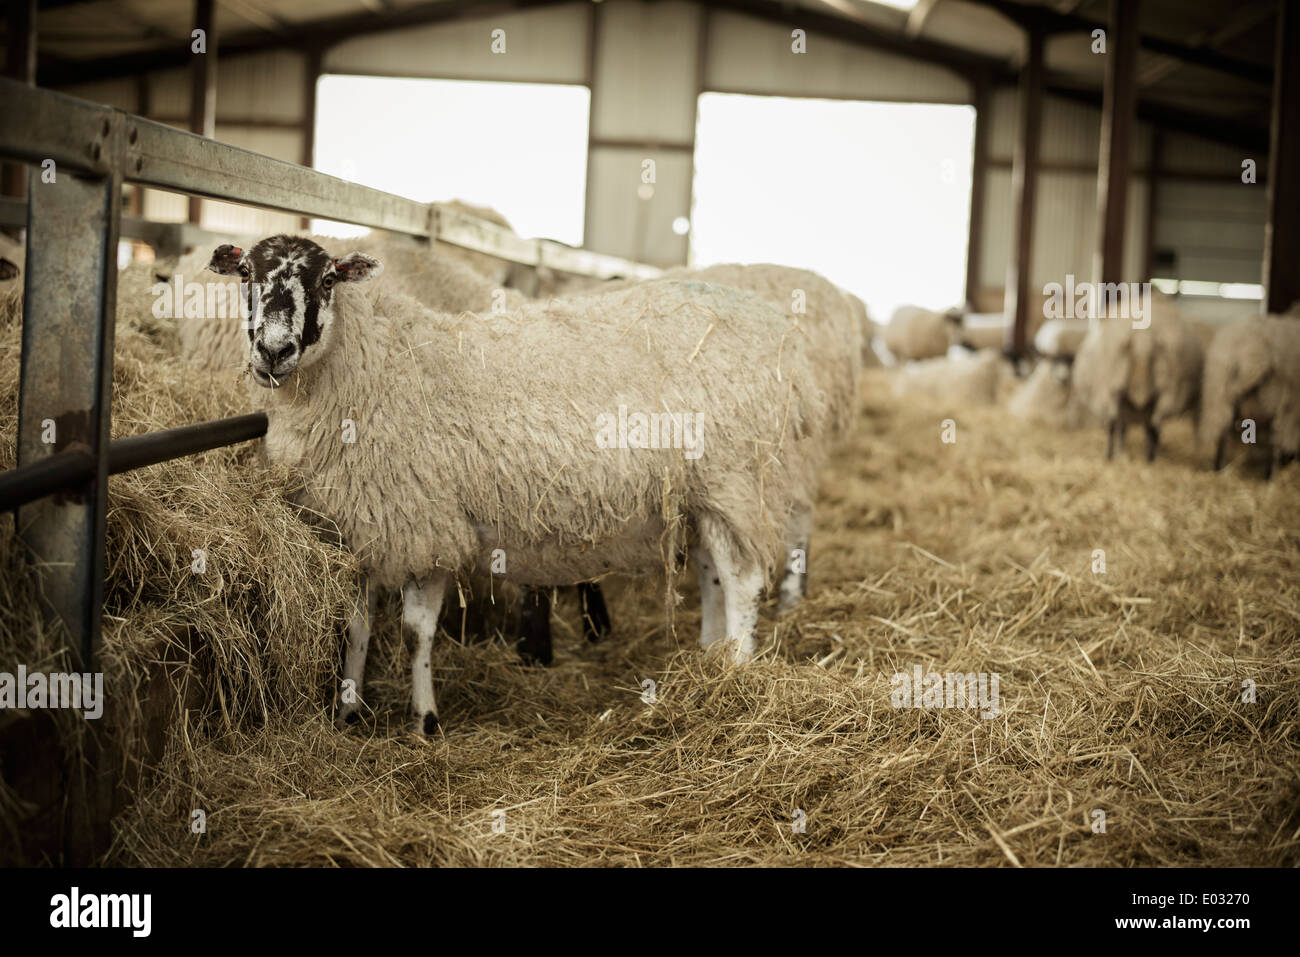 Sheep in a barn during lambing time. Stock Photo